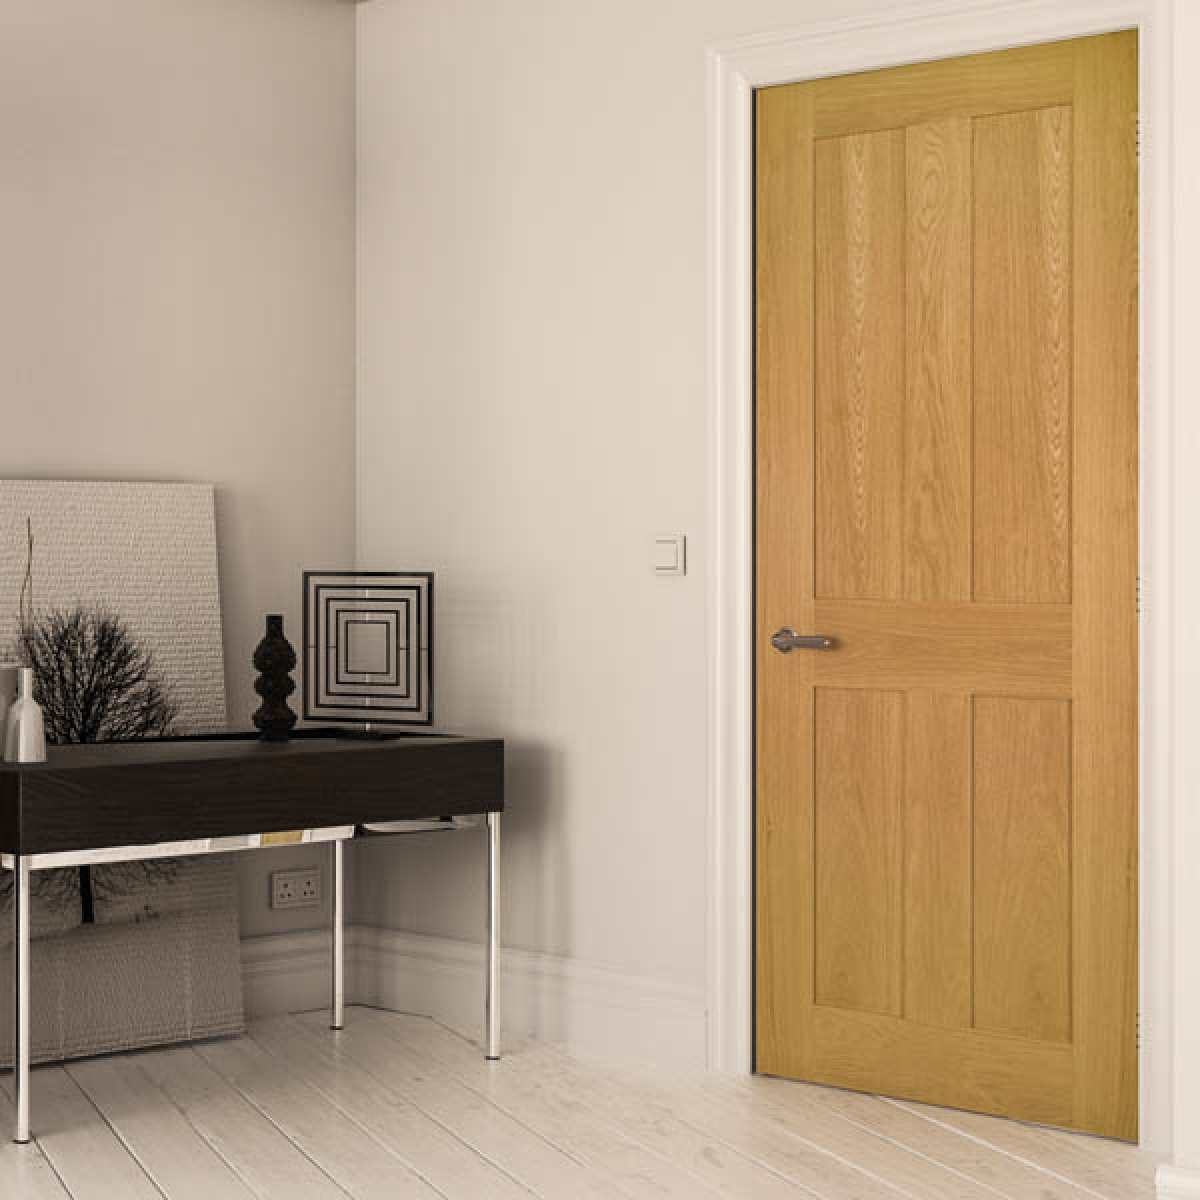 Eton oak lifestyle websters Image by Websters Timber